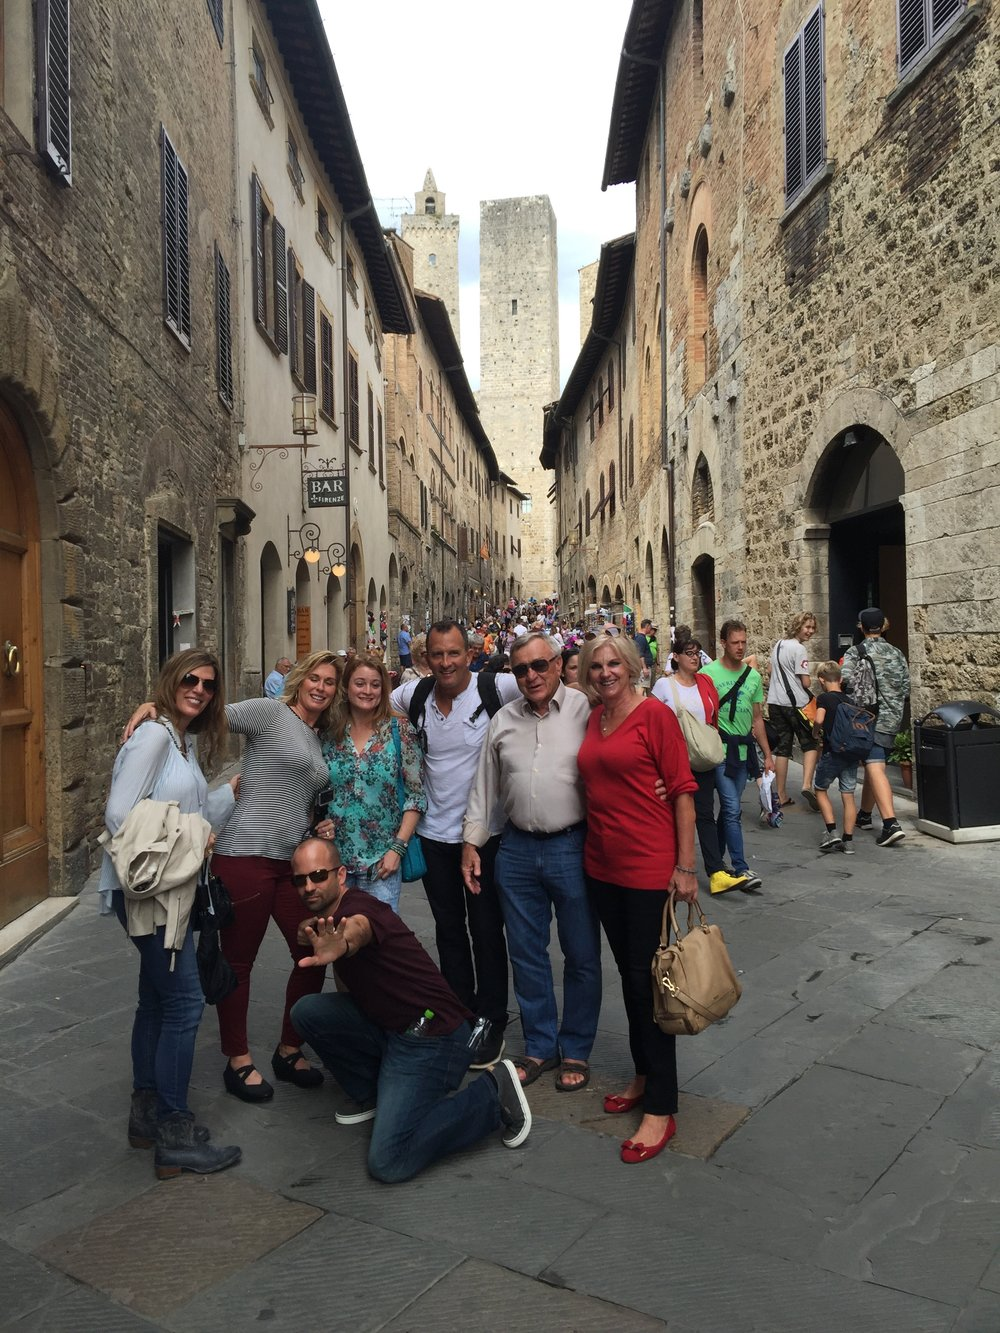 Always having good times - here on the streets of San Gimignano.